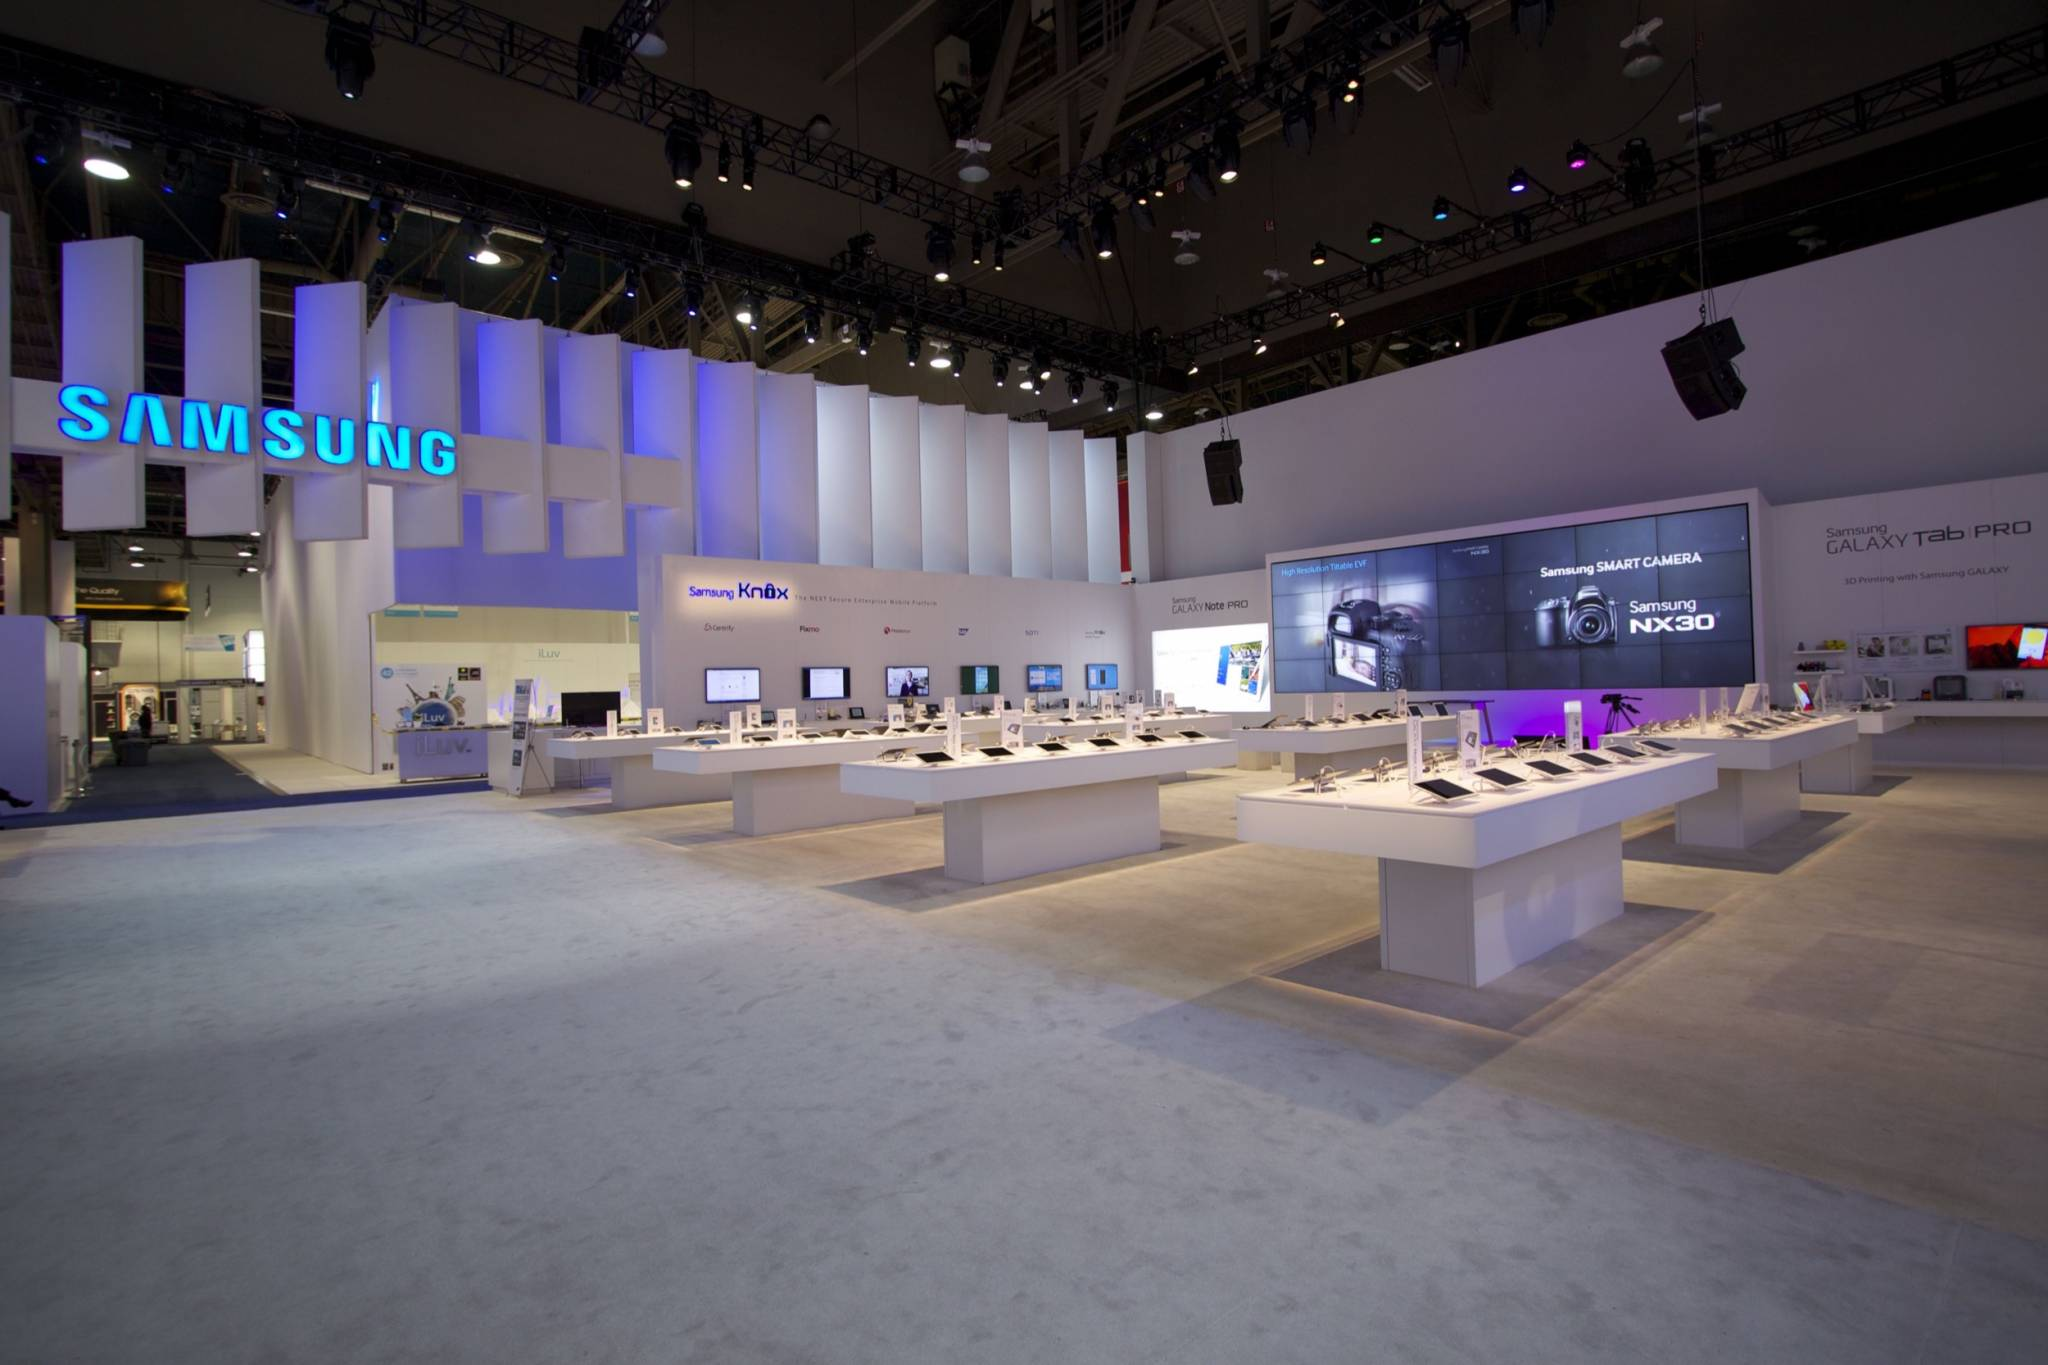 Shop Lighting Fixtures Led 2014 - Ces Samsung Exhibit - Fine Design Associates